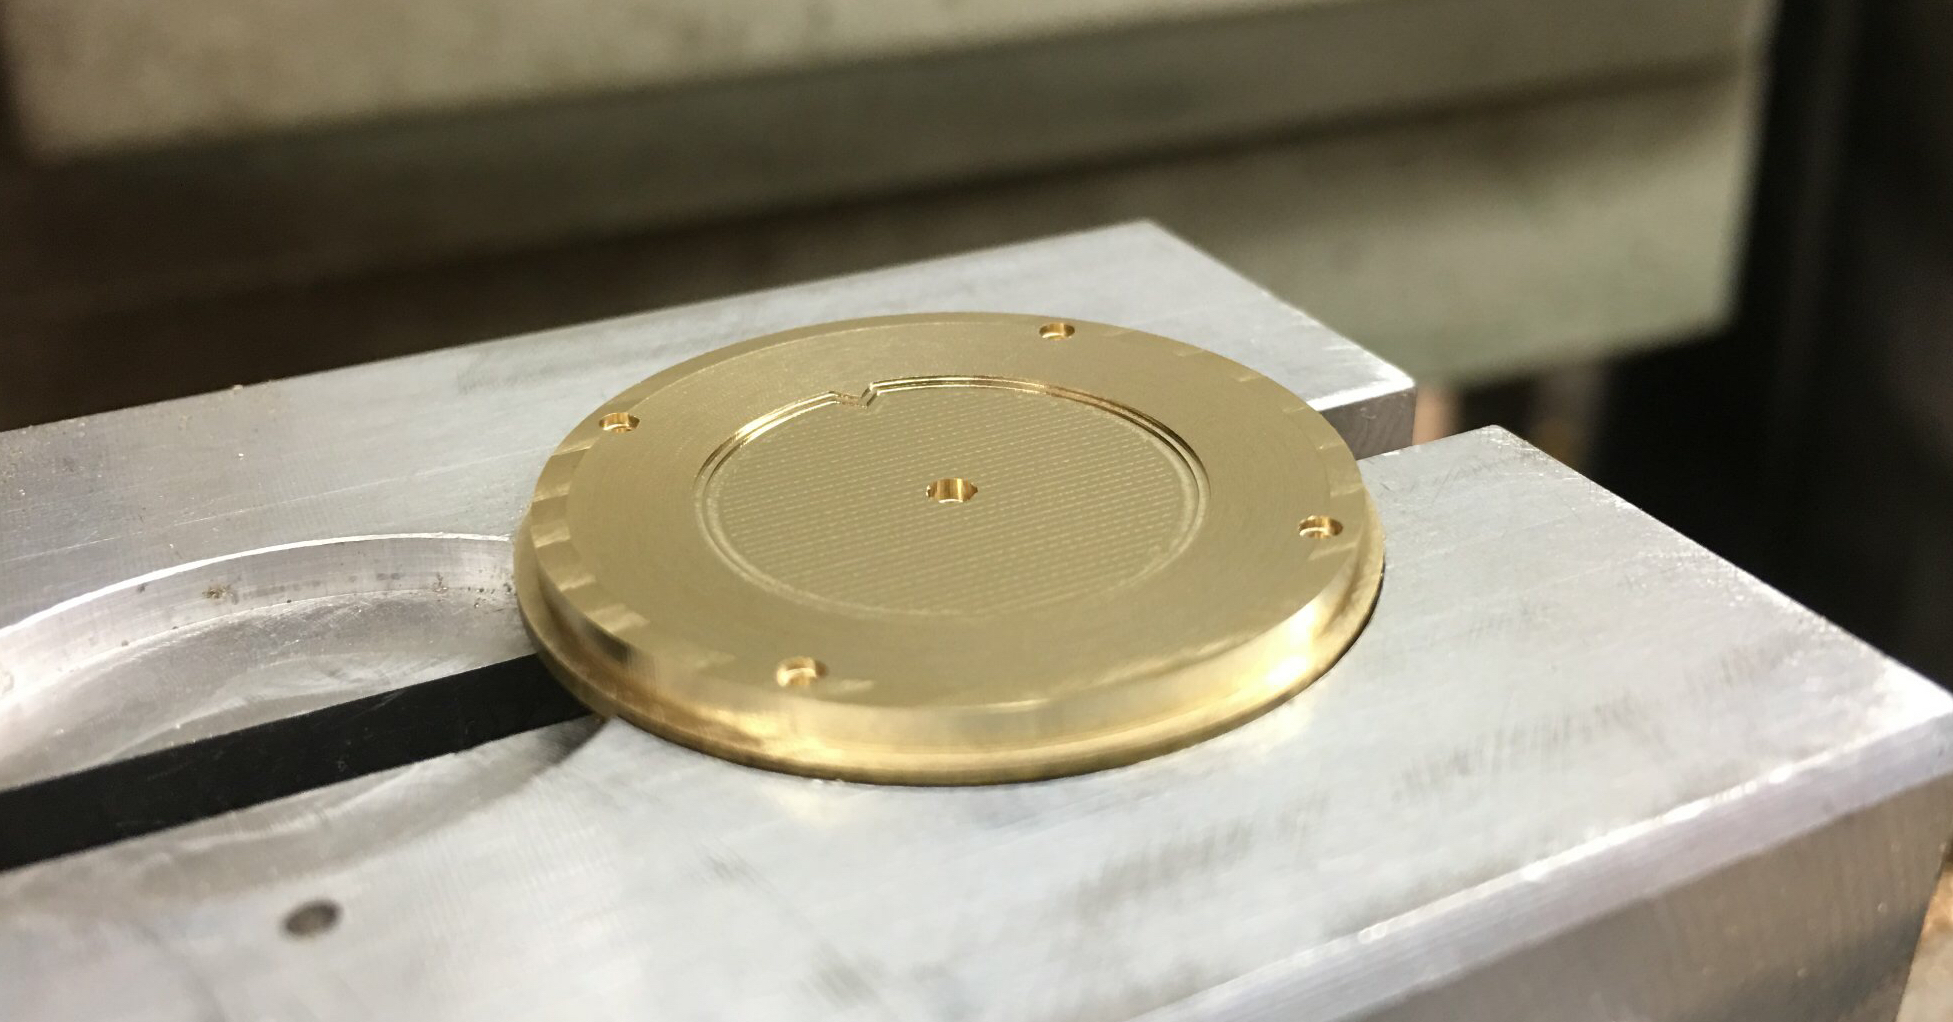 A raw machined dial ready for finishing.